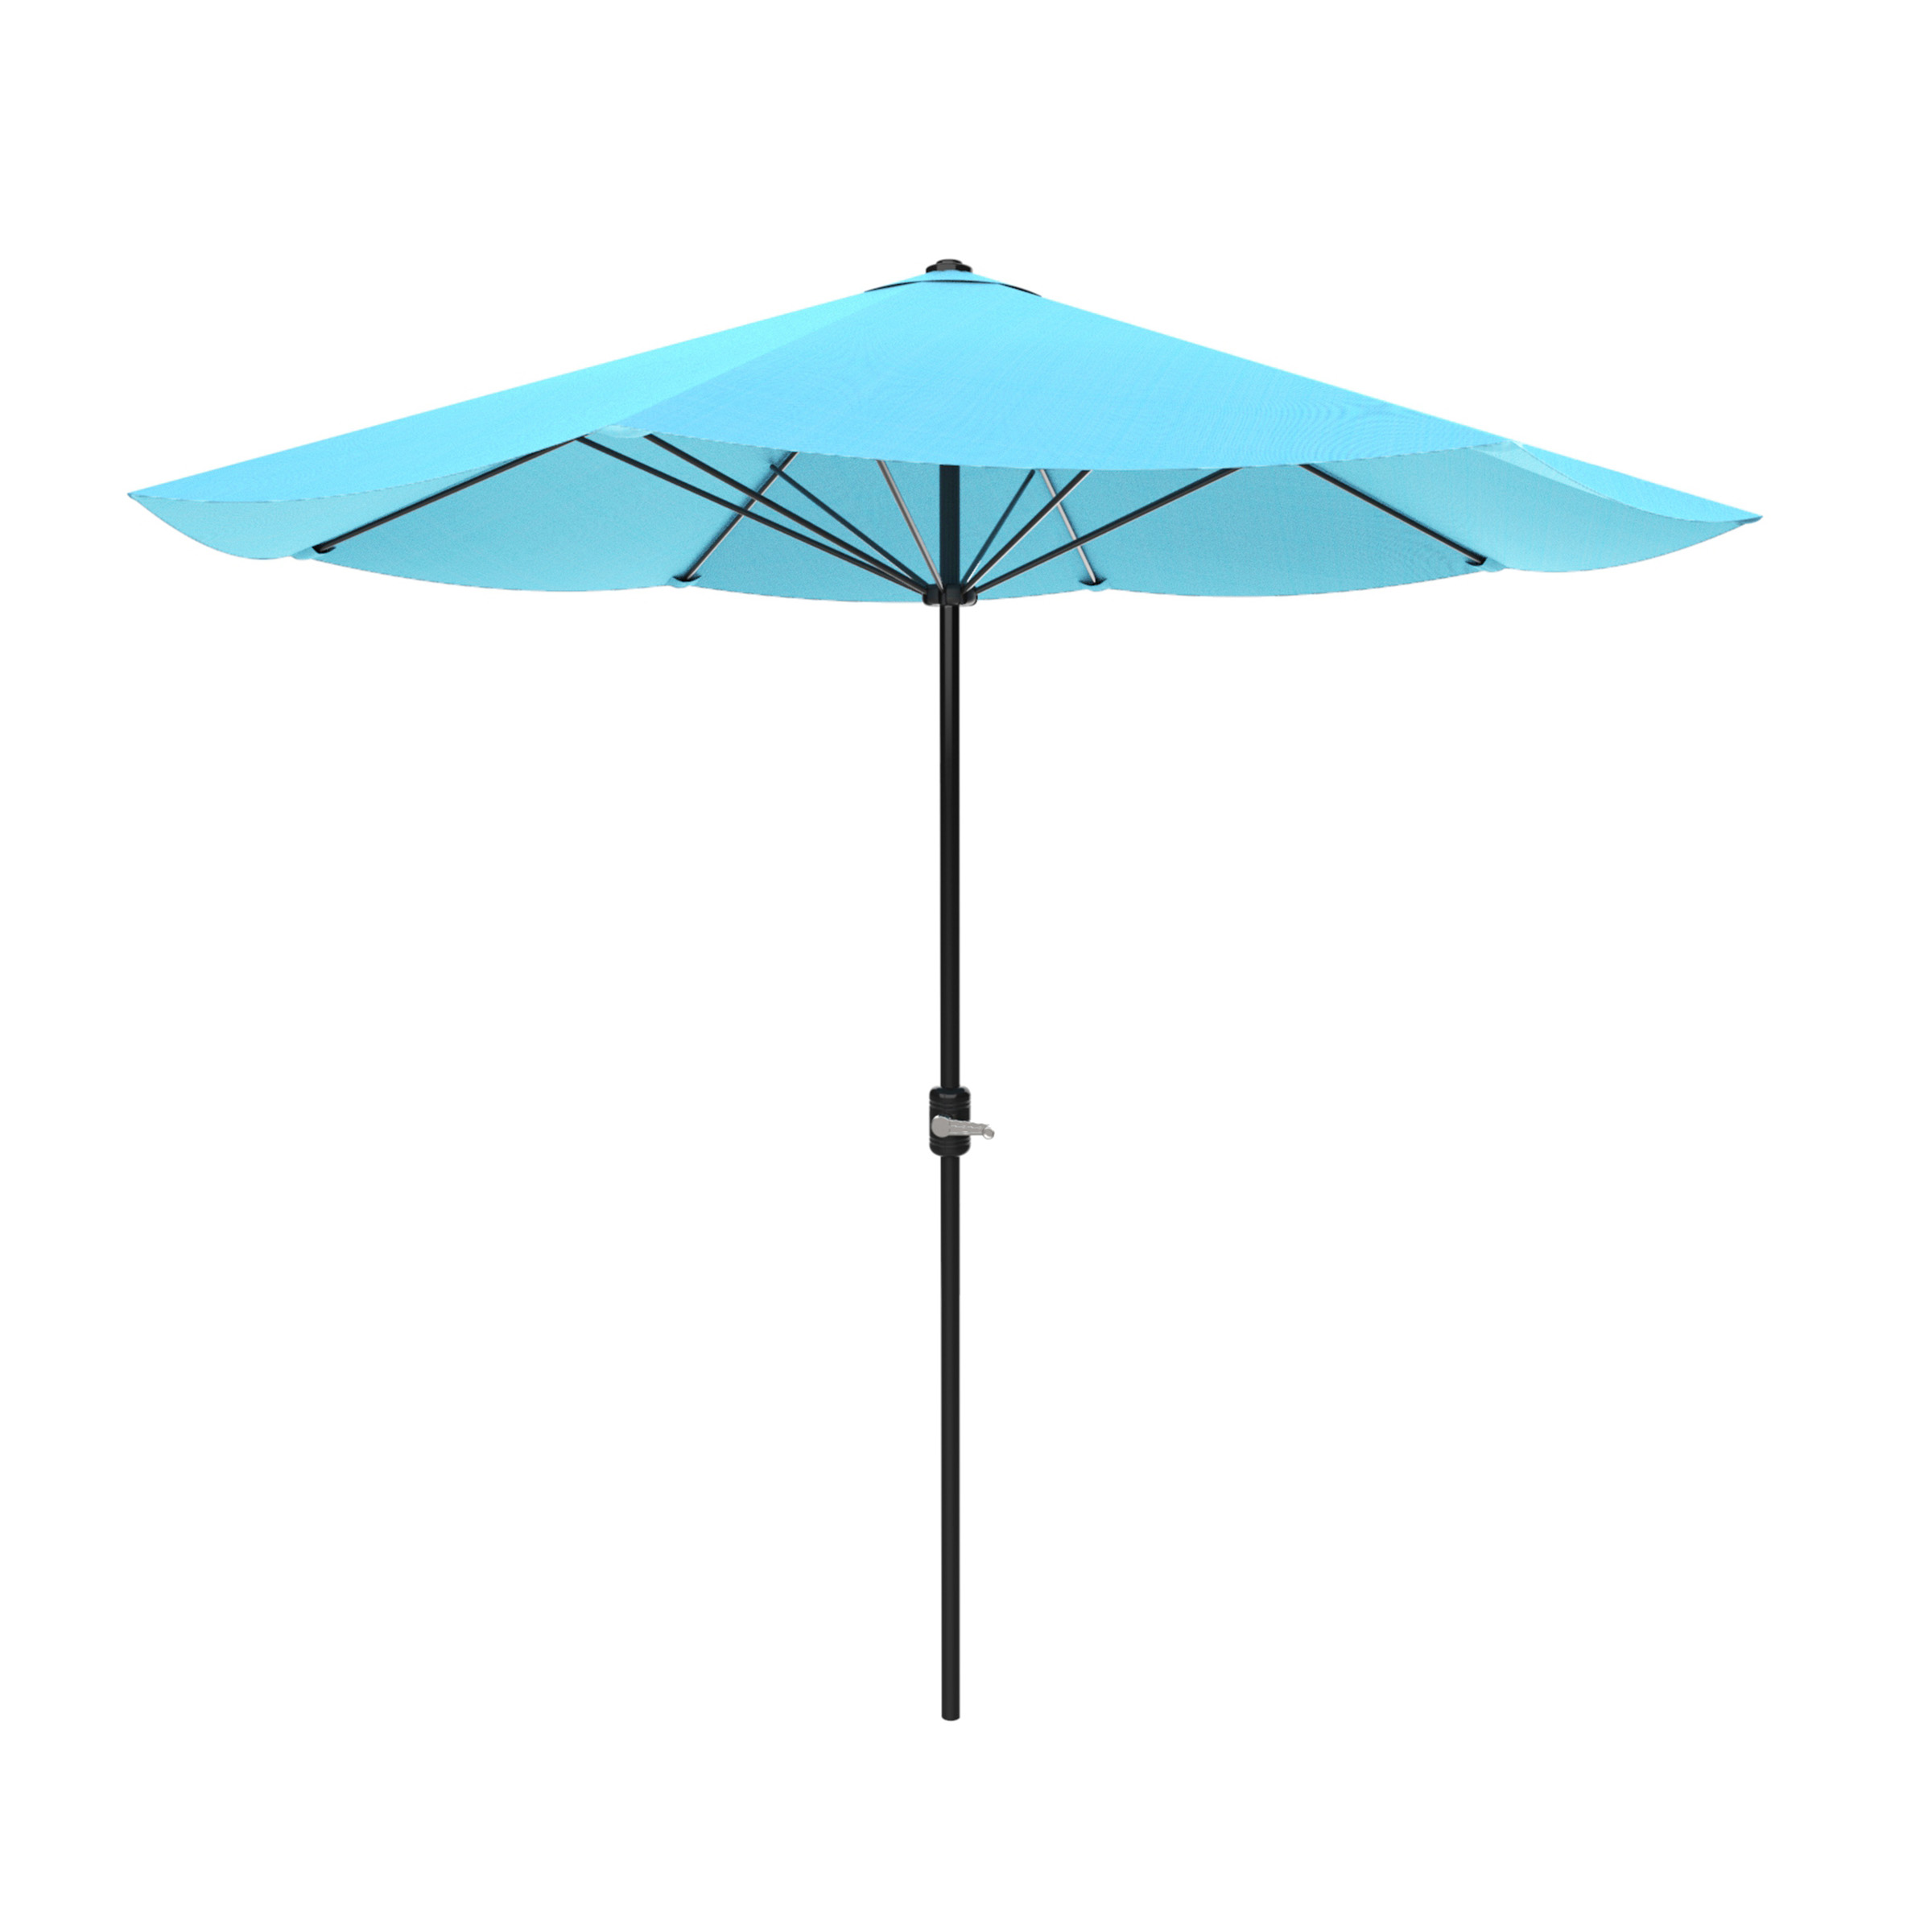 Patio Umbrella, Outdoor Shade with Easy Crank- Table Umbrella for Deck, Balcony, Porch, Backyard, Poolside, 9 Foot by Pure Garden (Blue)